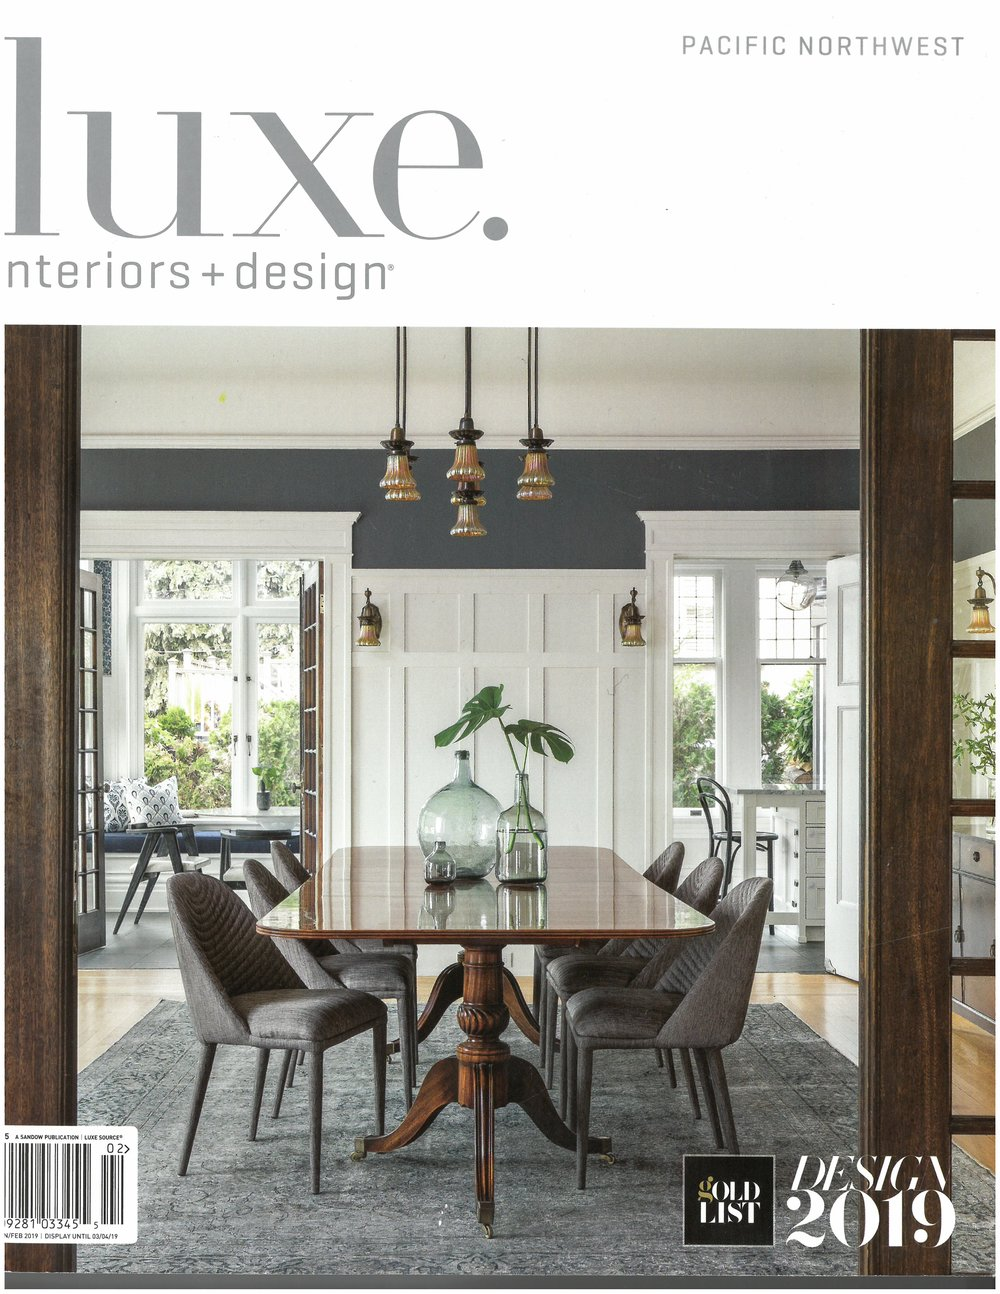 Luxe Pacific Northwest January/February 2019